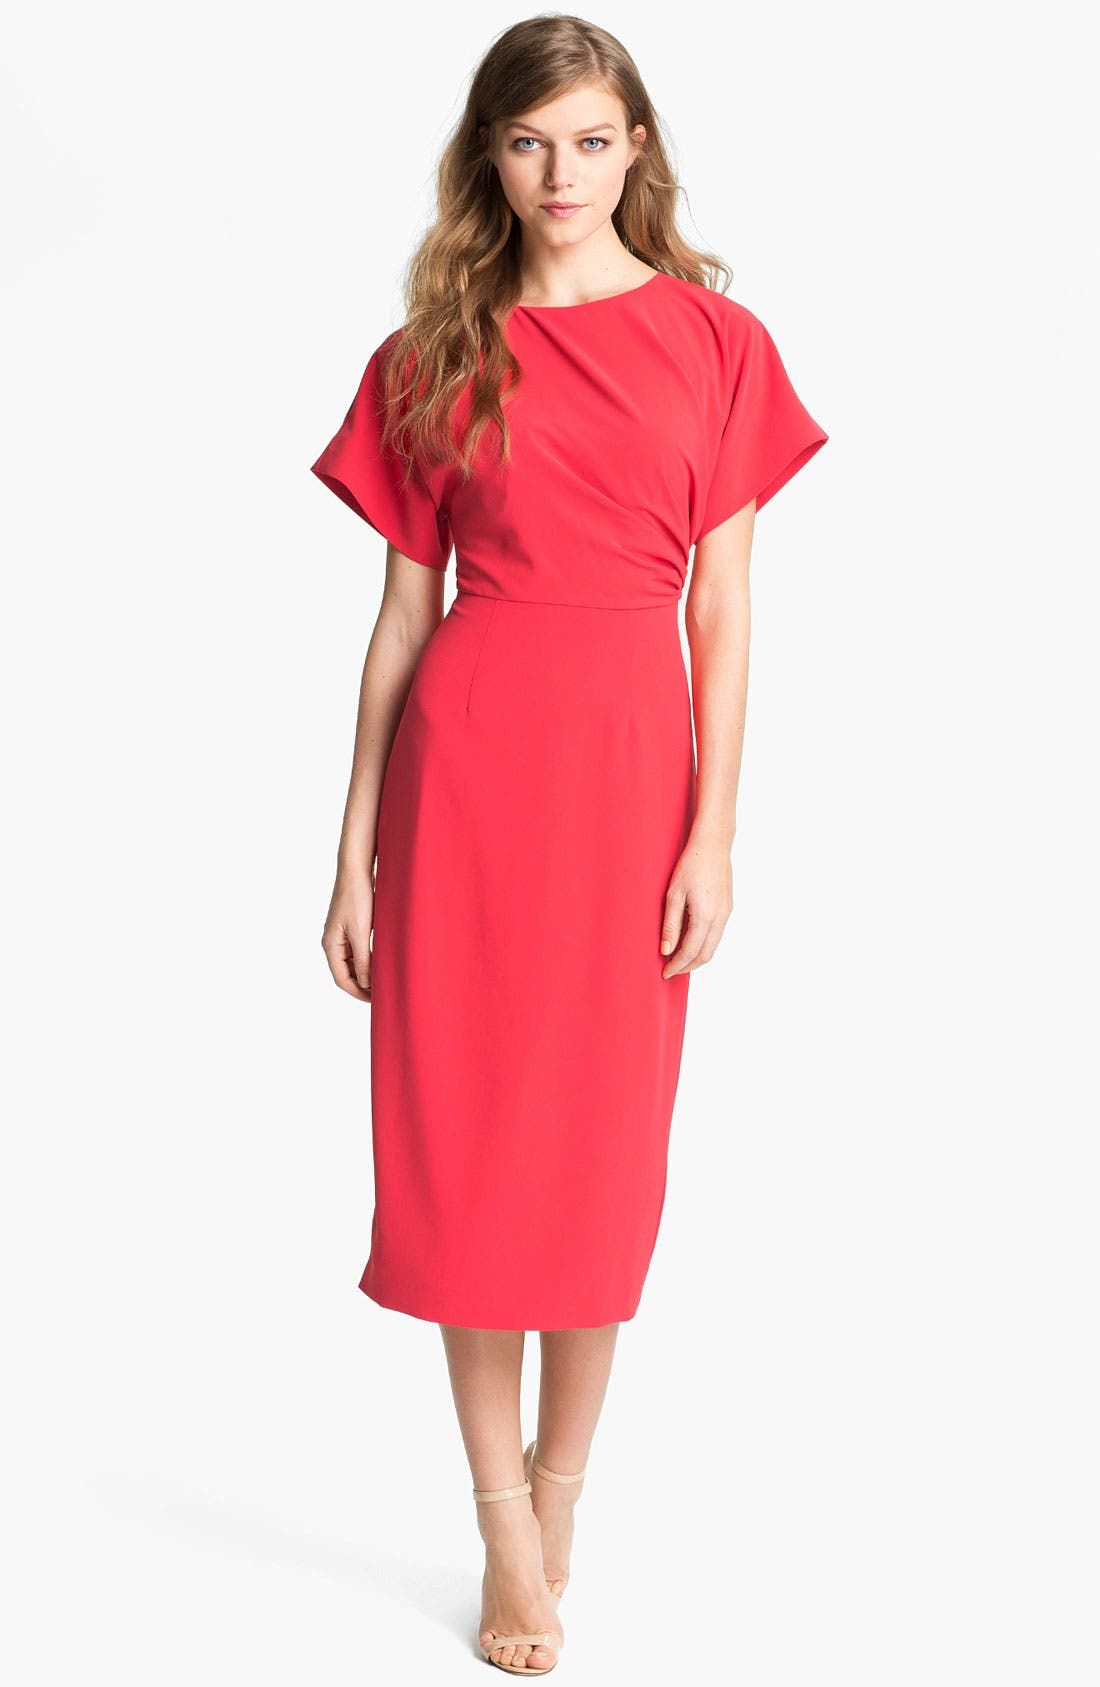 Alternate Image 1 Selected - Ted Baker London Gathered Midi Dress (Online Only)